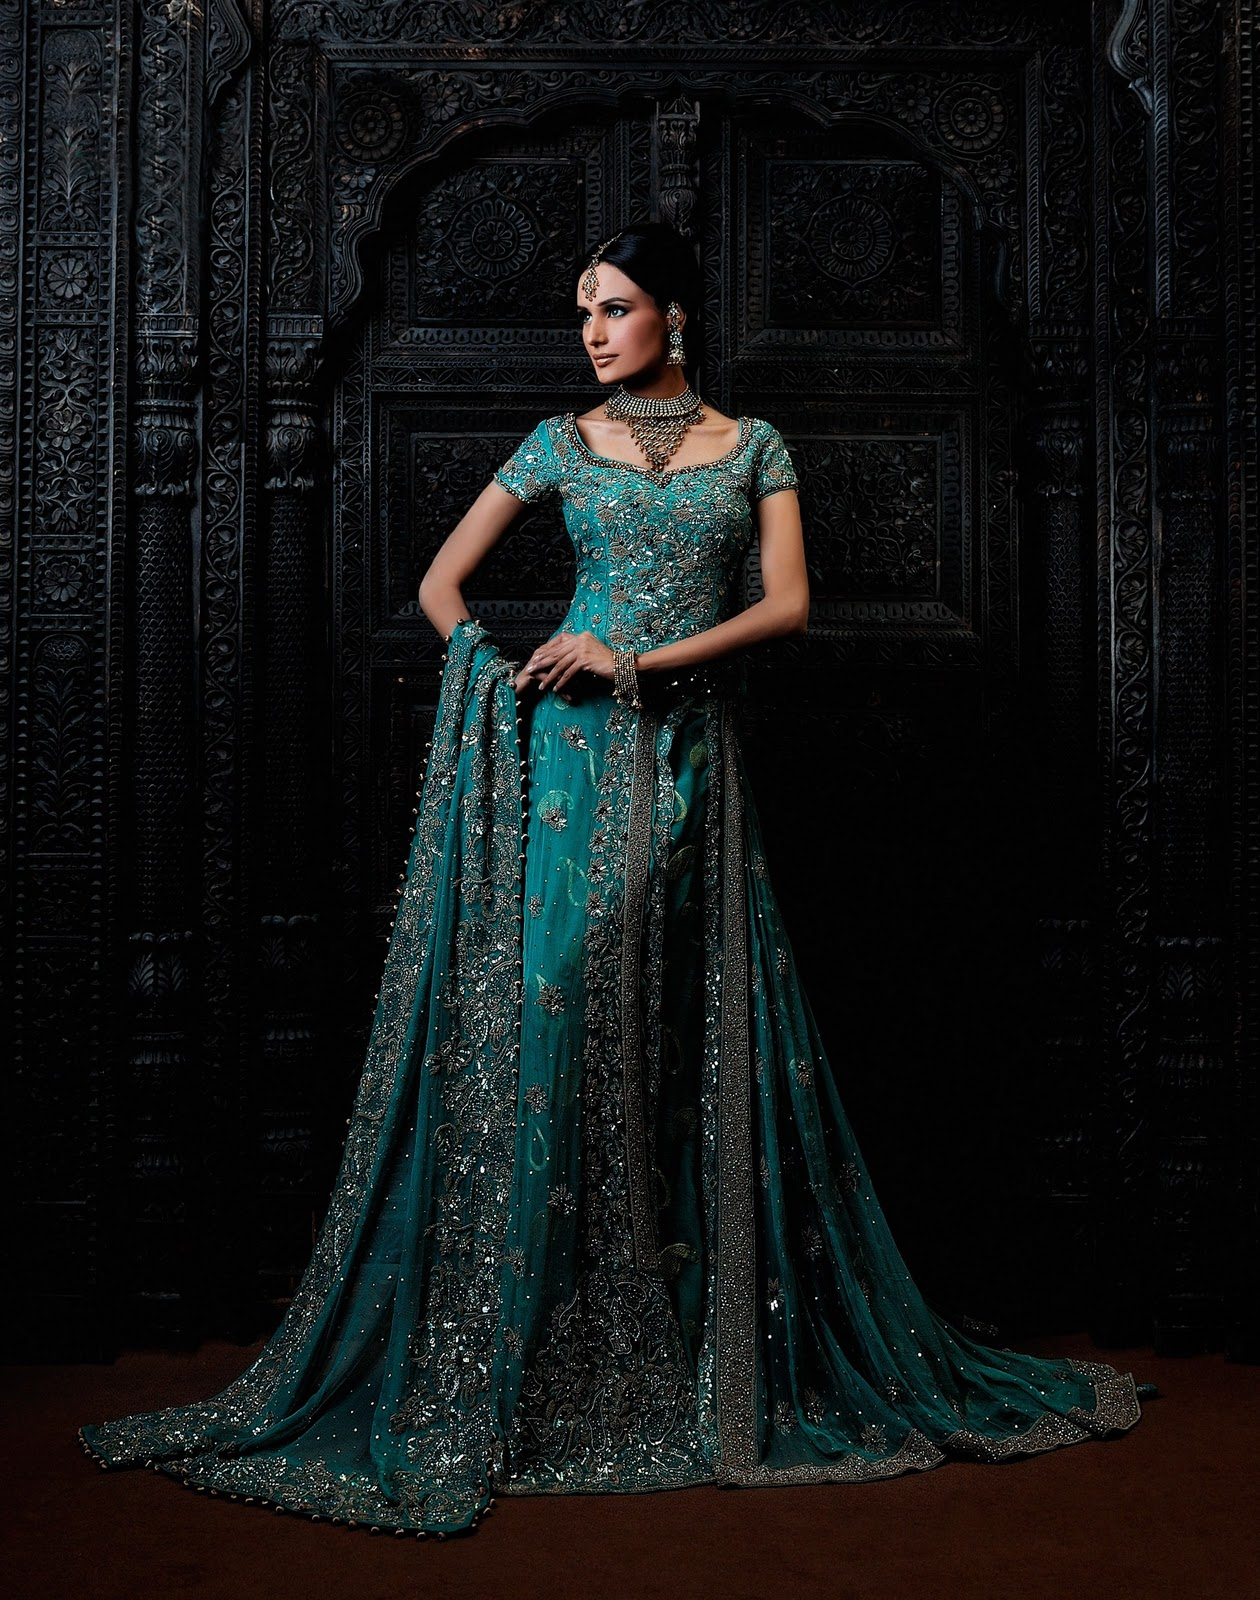 Online Pakistani Wedding Dresses Of Paisley Curtain Bridal Dresses To Marry For